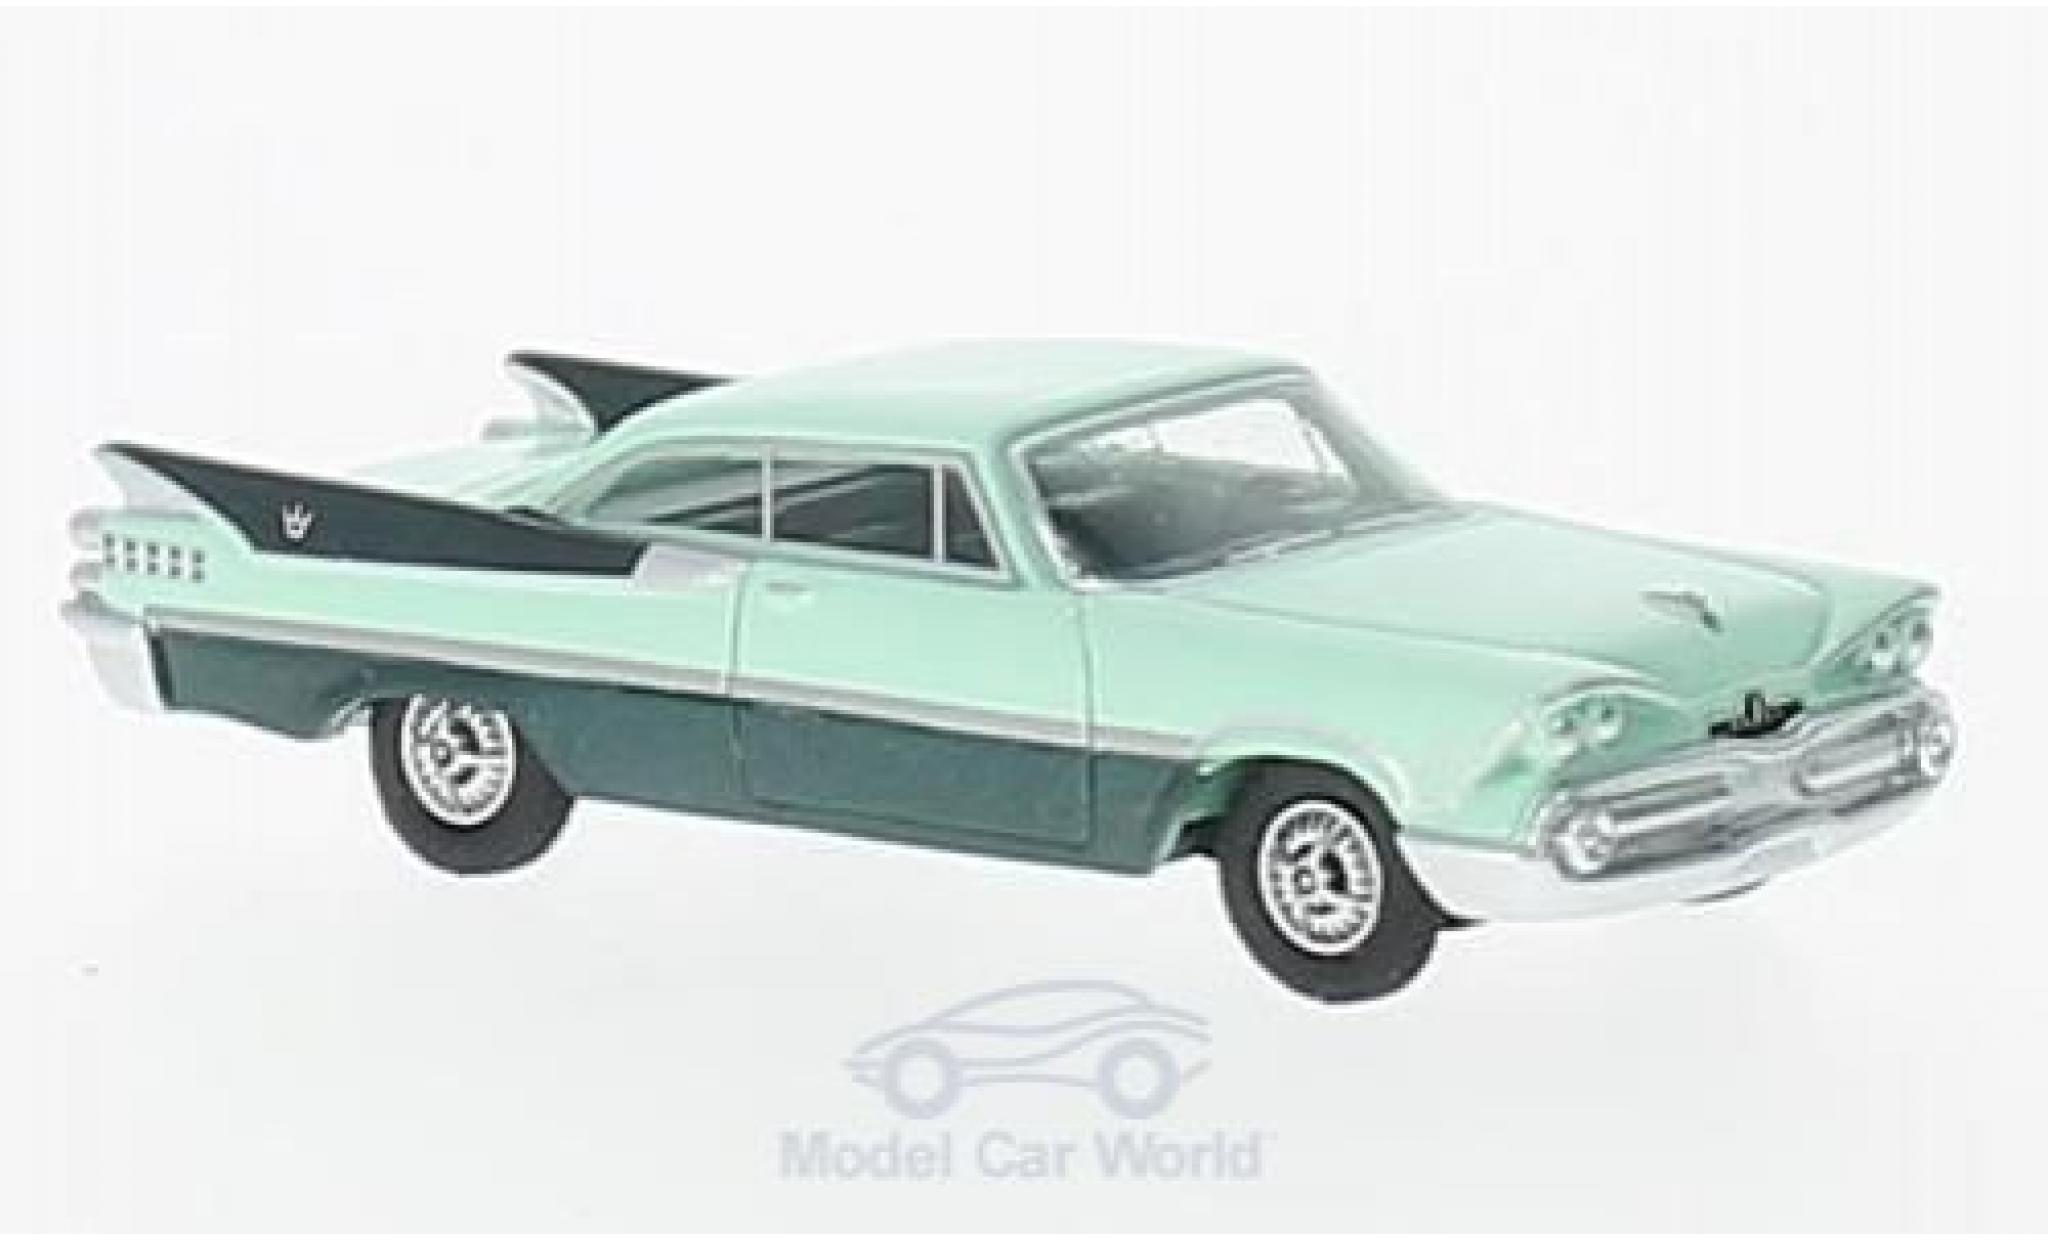 Dodge Custom Royal Lancer 1/87 BoS Models Coupe hellgrün/dunkelgrün 1959